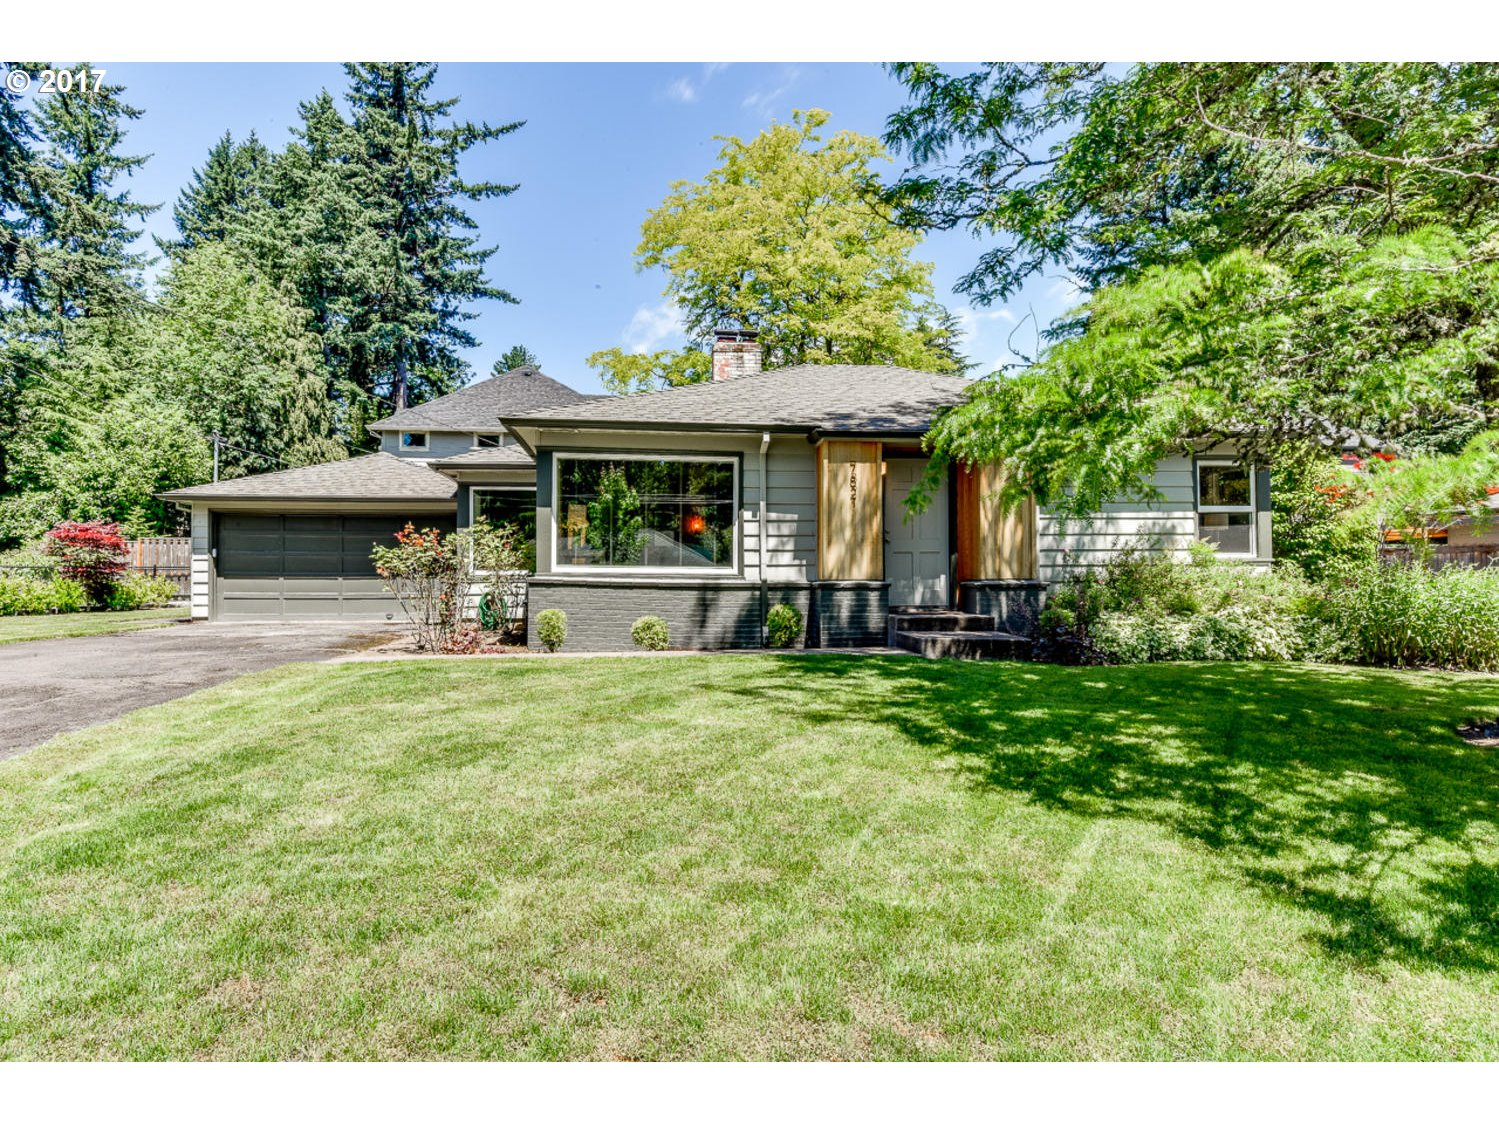 7821 SW GREENWOOD DR Portland Home Listings - The Rob Levy Team Real Estate